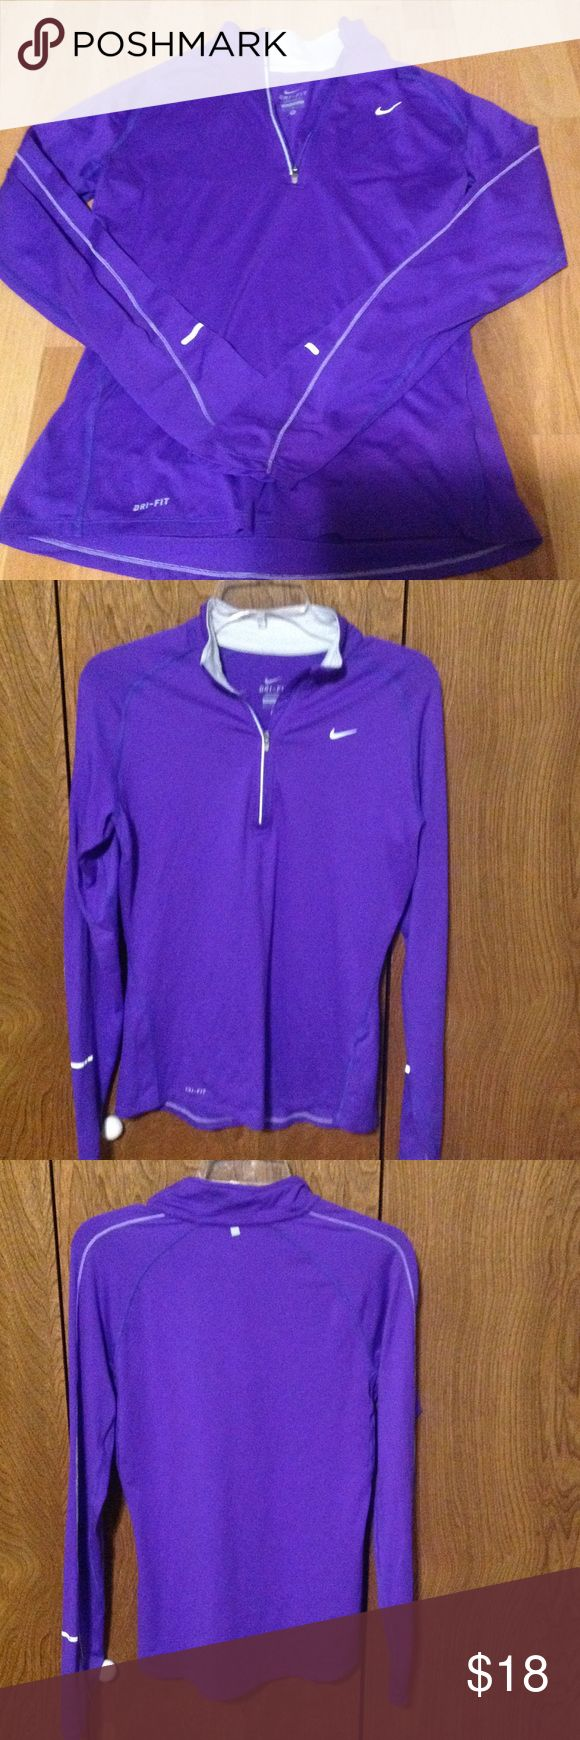 Nike Dri Fit Pullover jacket Nike Dri fit Pullover jacket . 1/4 Zip Up with reflective strips. In good condition. No holes, tears or stains. Nike Tops